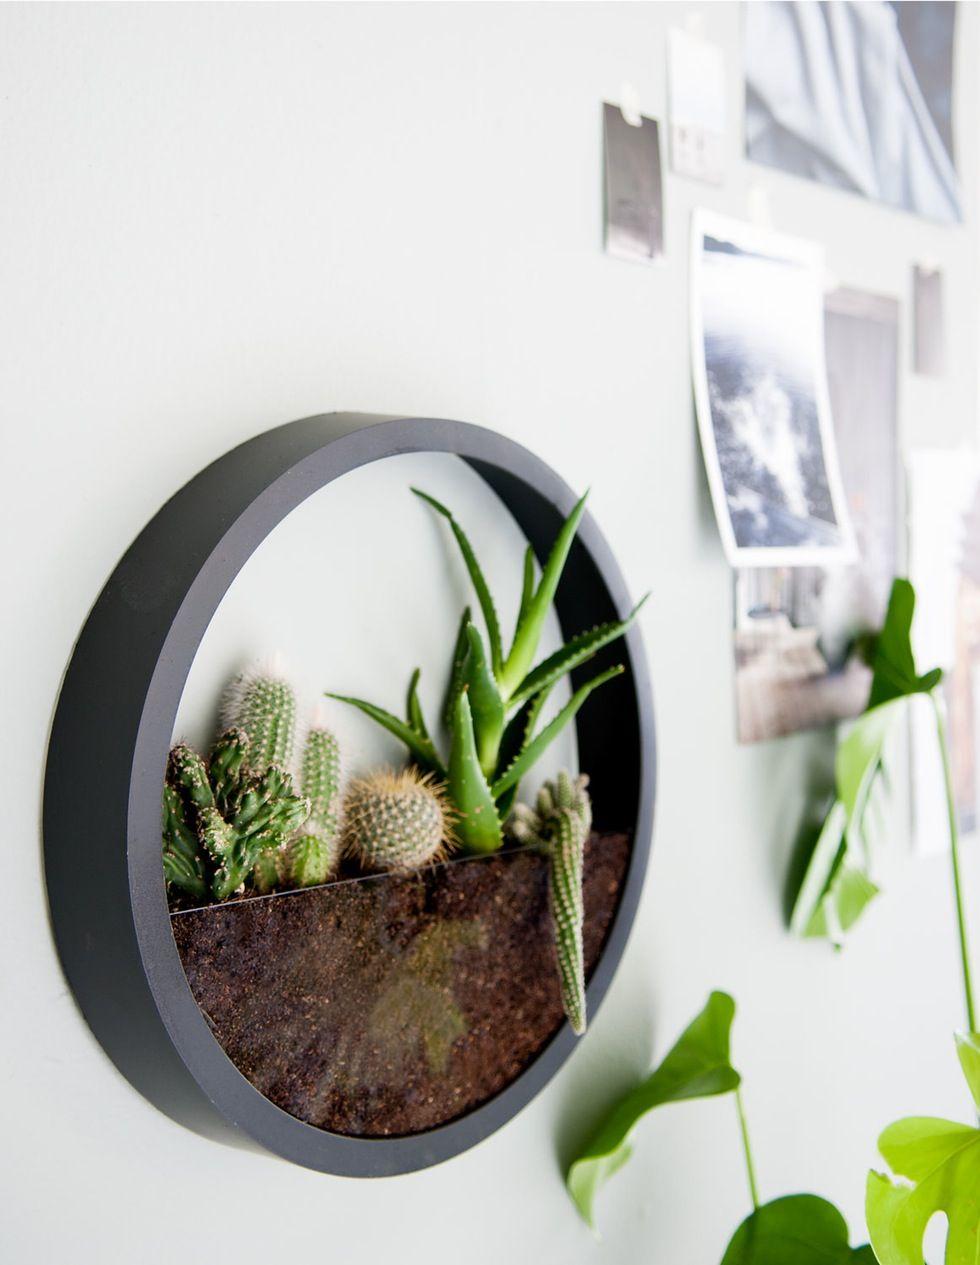 diy wall clock terrarium our new home ideas pinterest pflanzen kaktus und deko. Black Bedroom Furniture Sets. Home Design Ideas